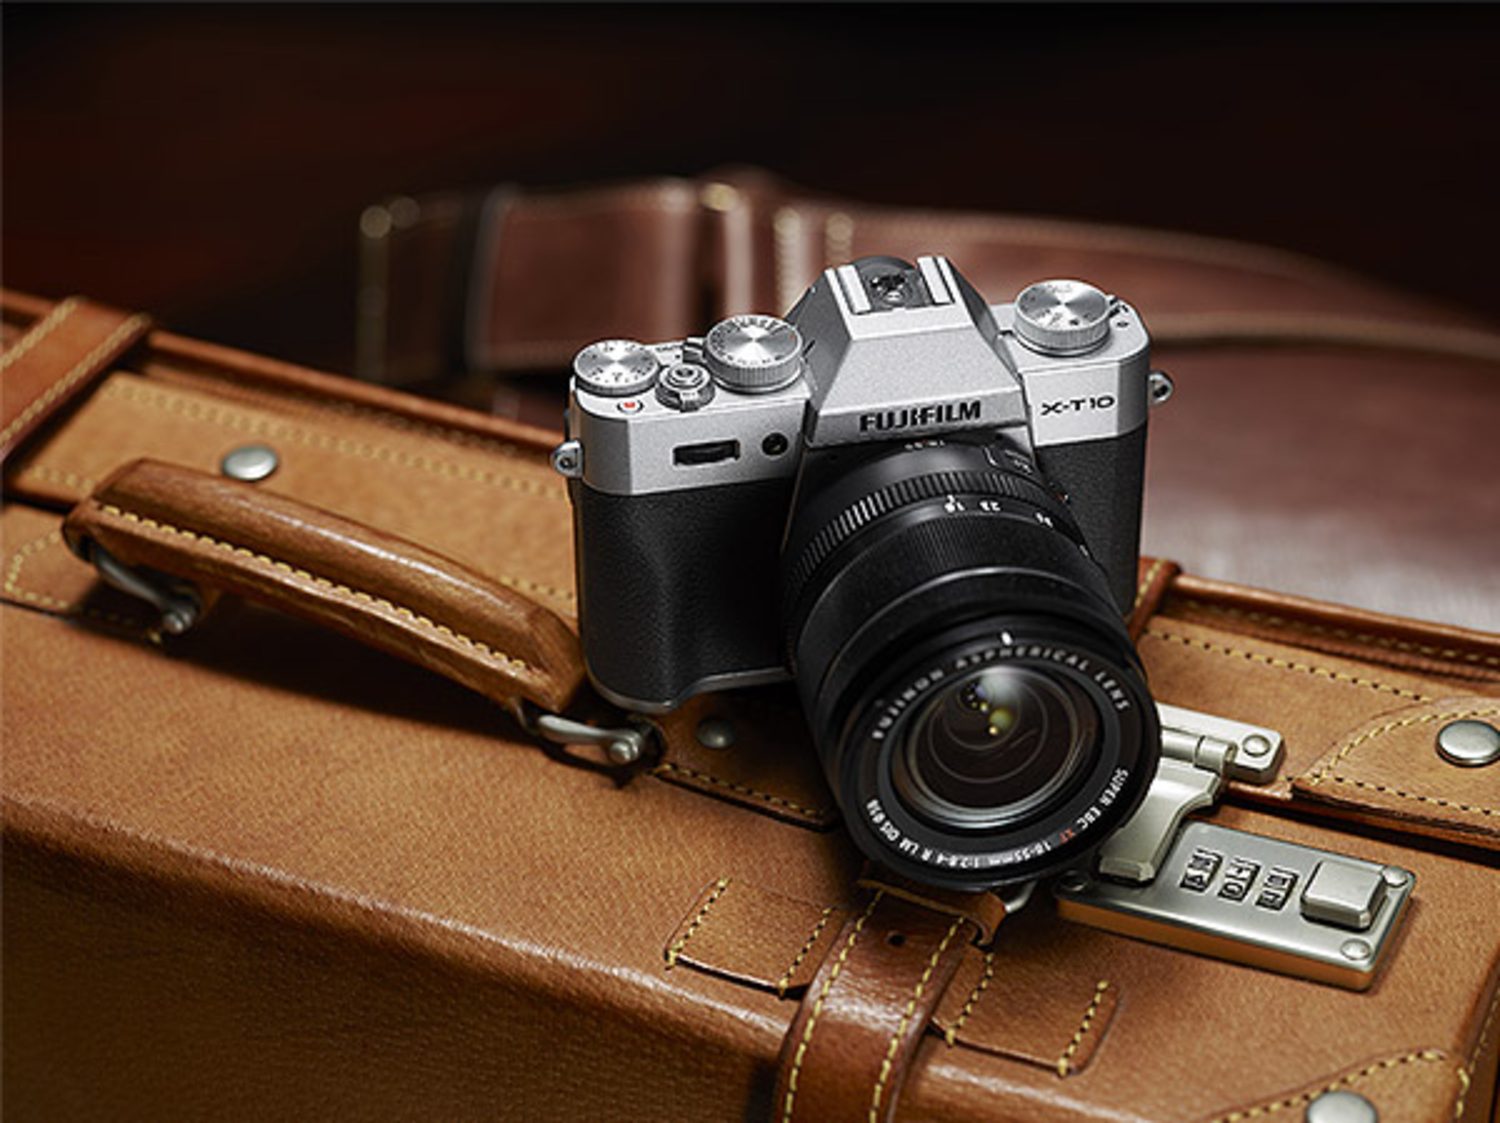 The New Mirrorless Camera: Fujifilm's X-T10